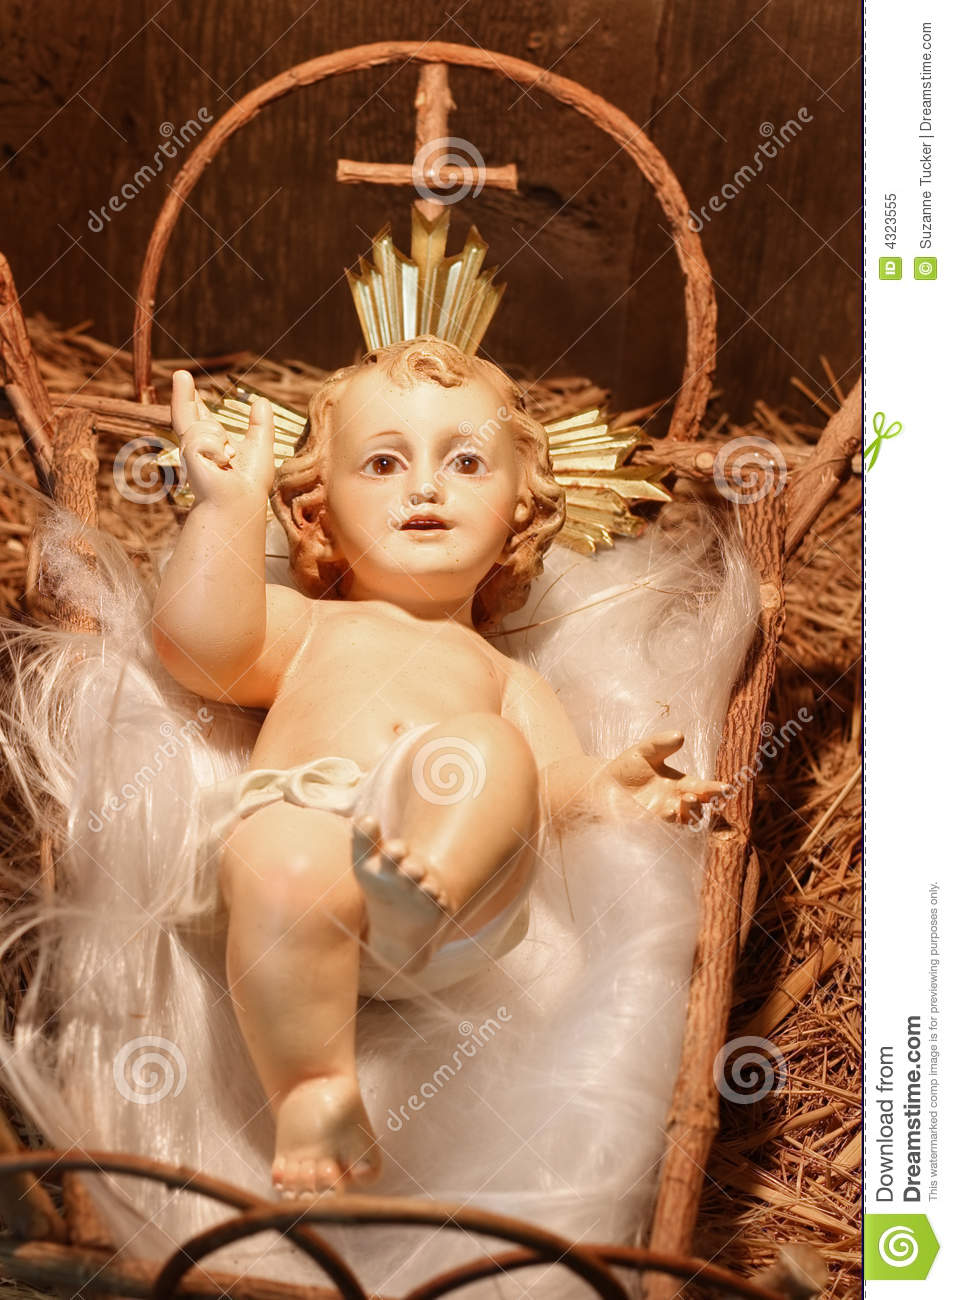 baby jesus royalty free stock photo image 4323555 Baby Clip Art baby boy crib clipart